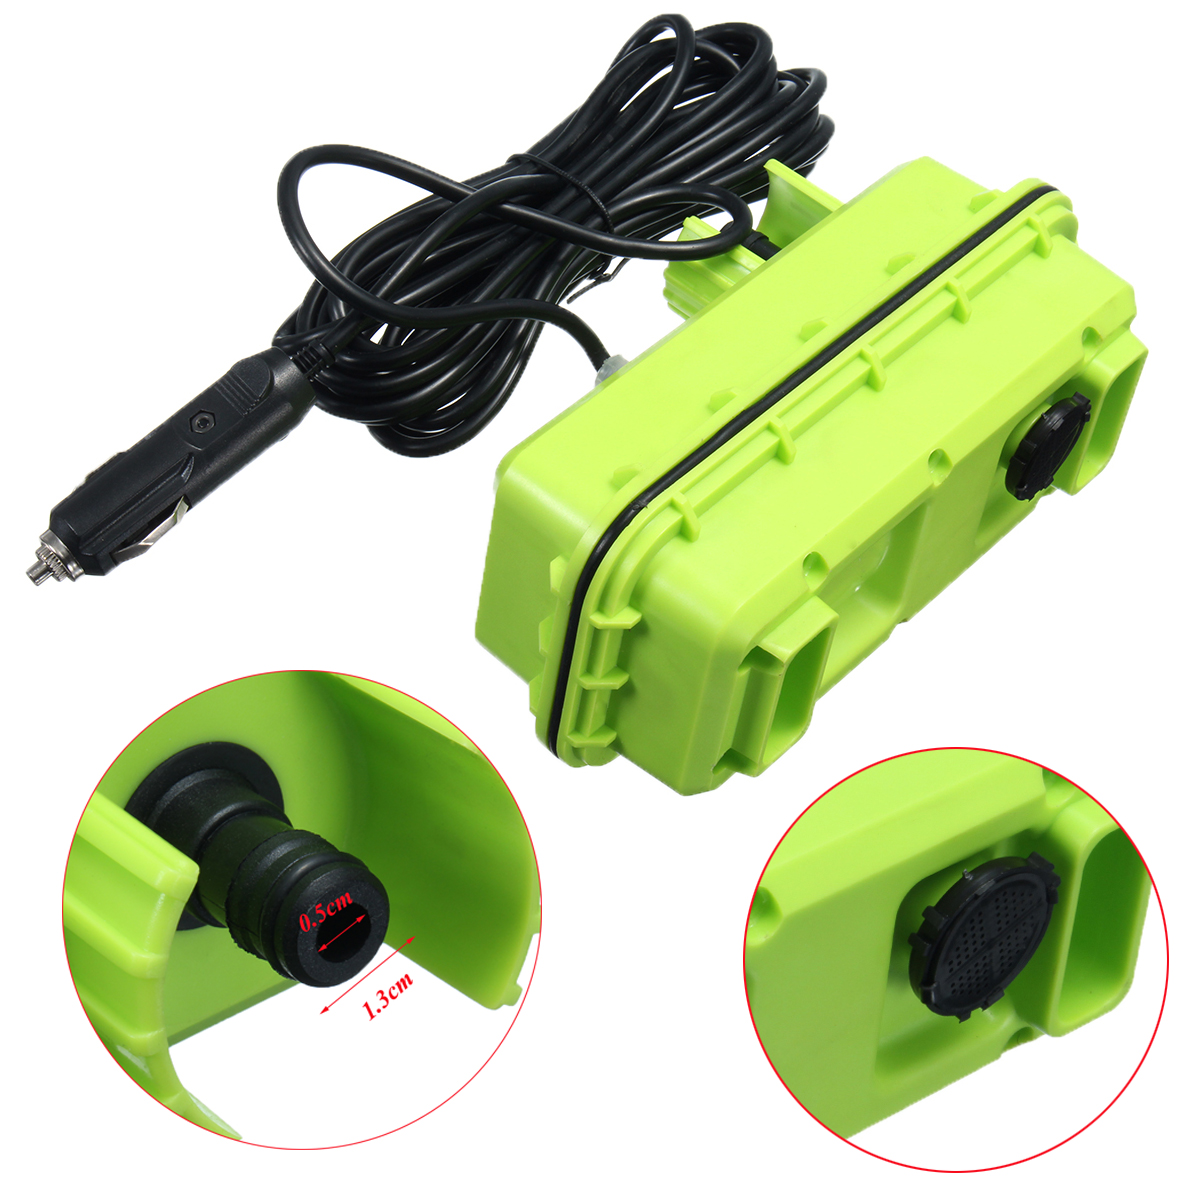 12V 80W Portable High Pressure Washer Spray Gun Electric Car Washer Cleaner Pump